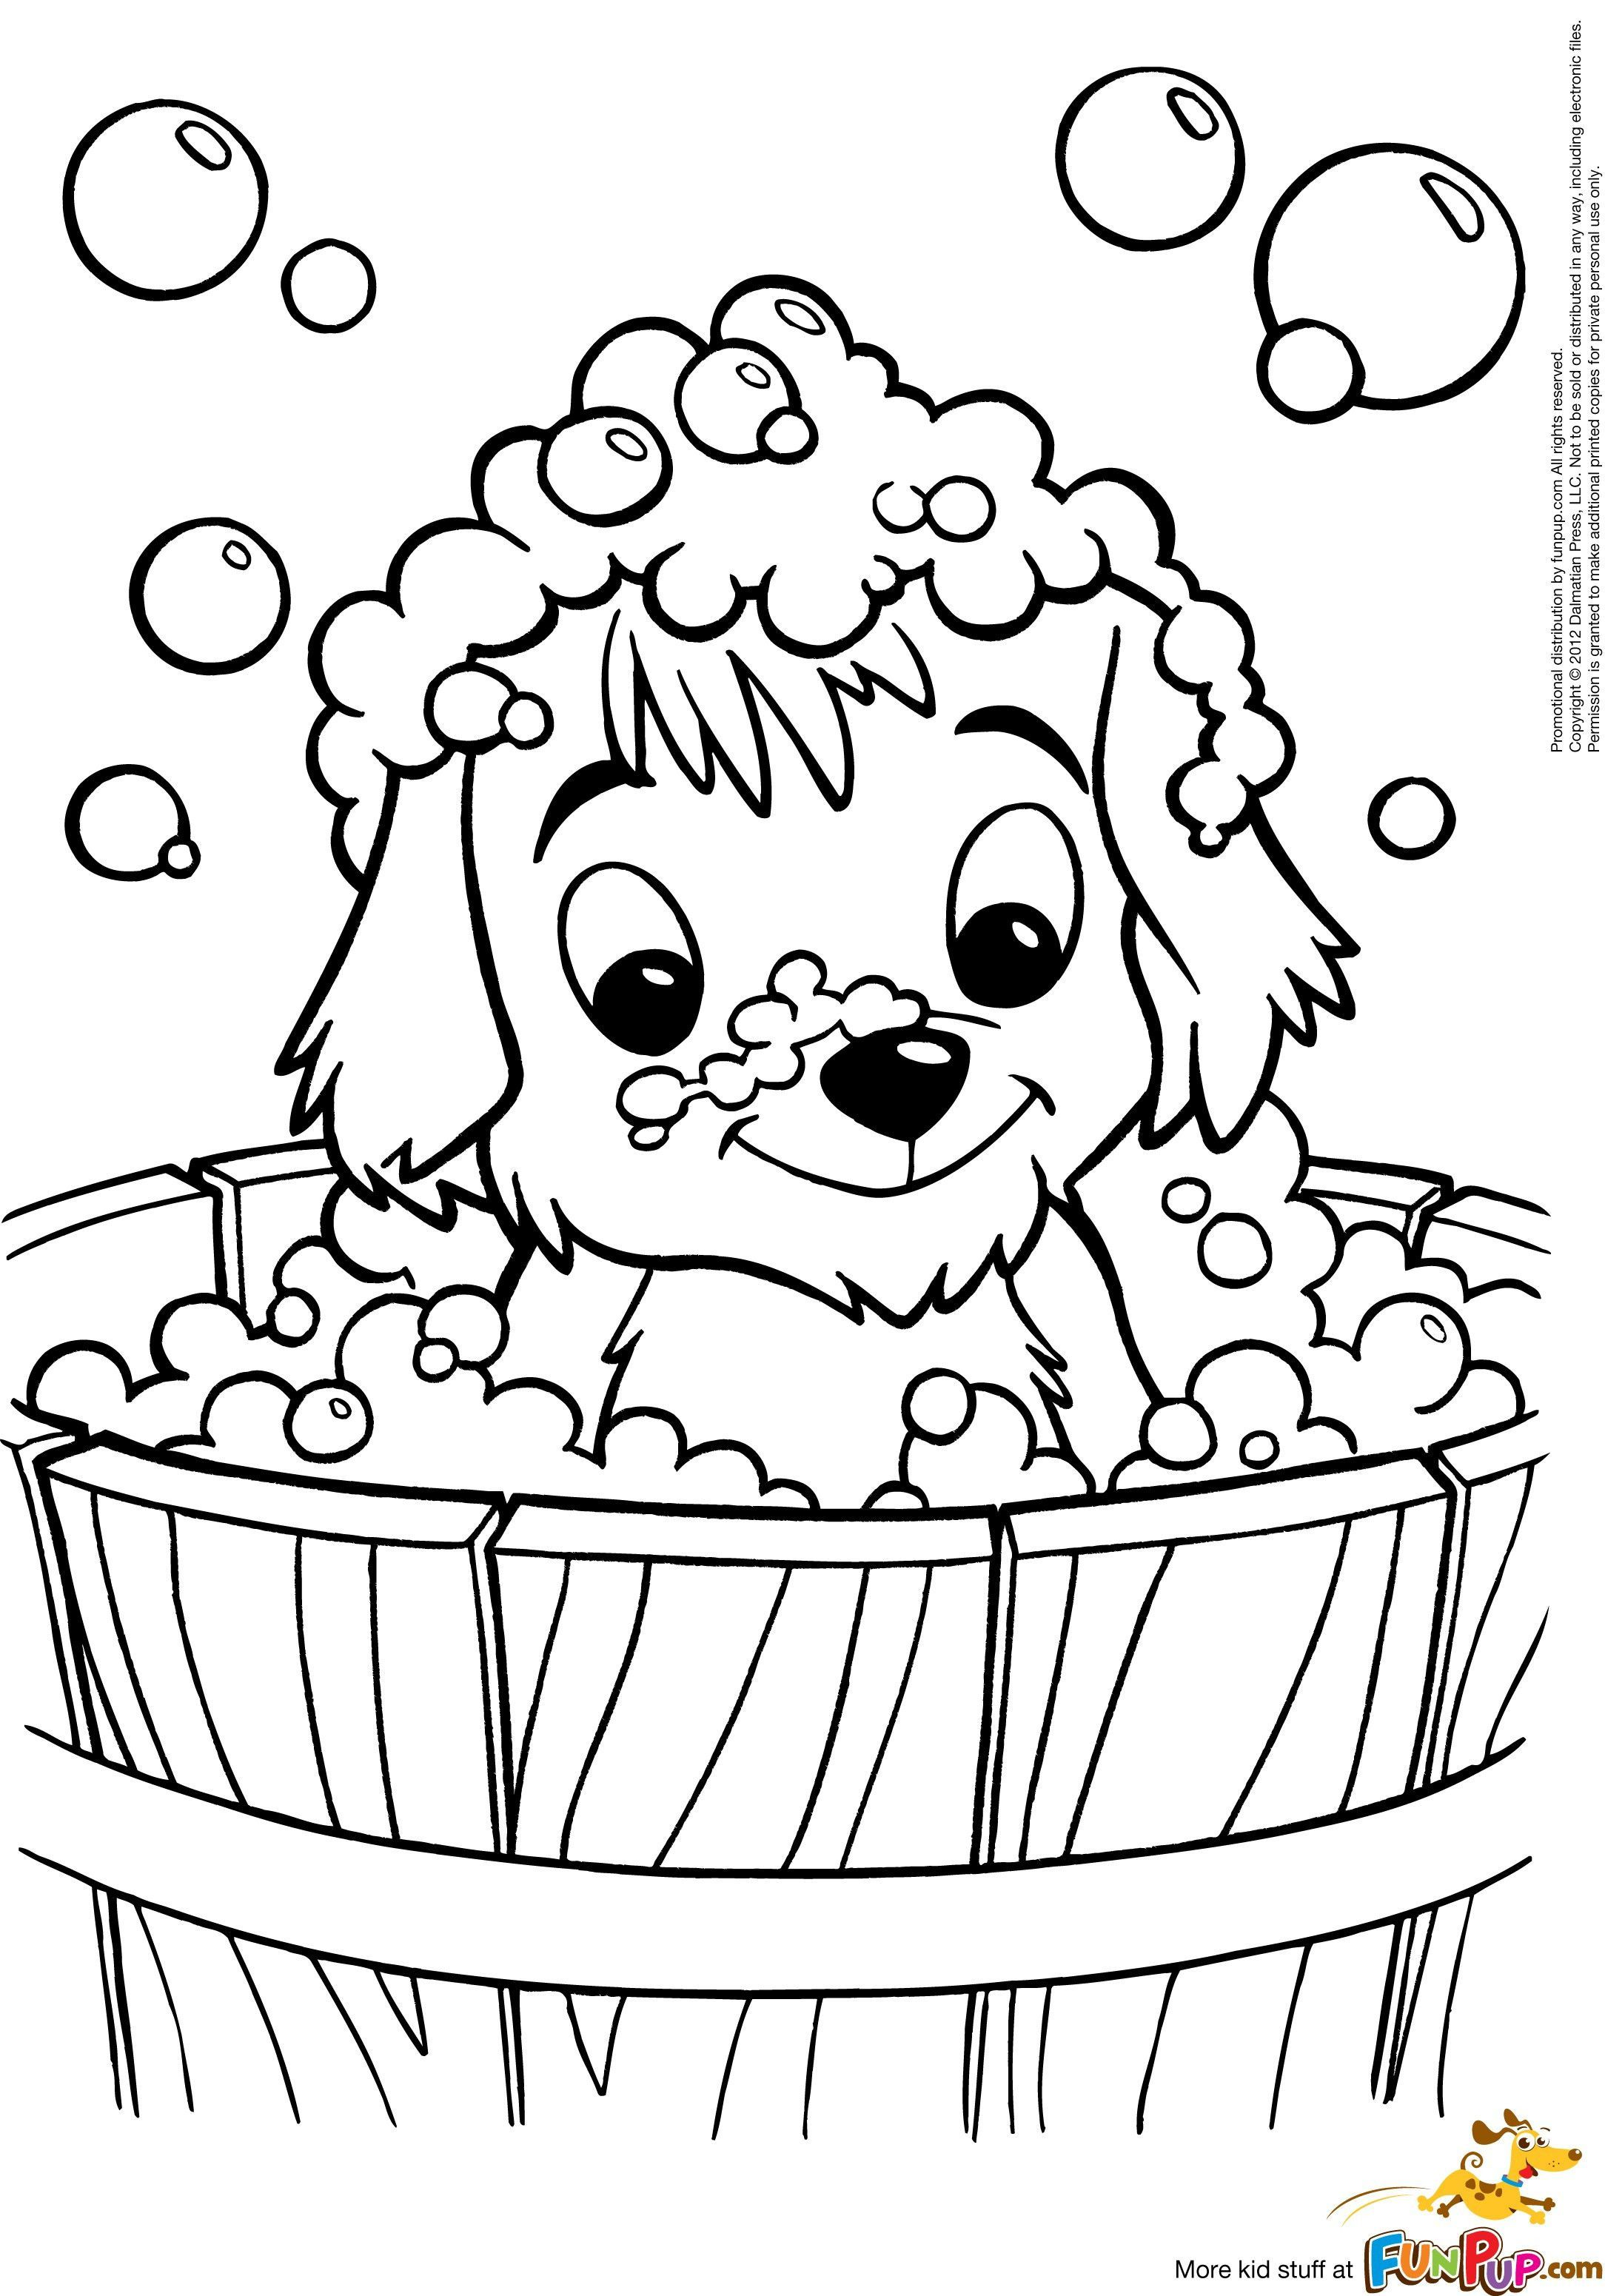 Coloring Pictures Of Puppy Dog Pals With Images